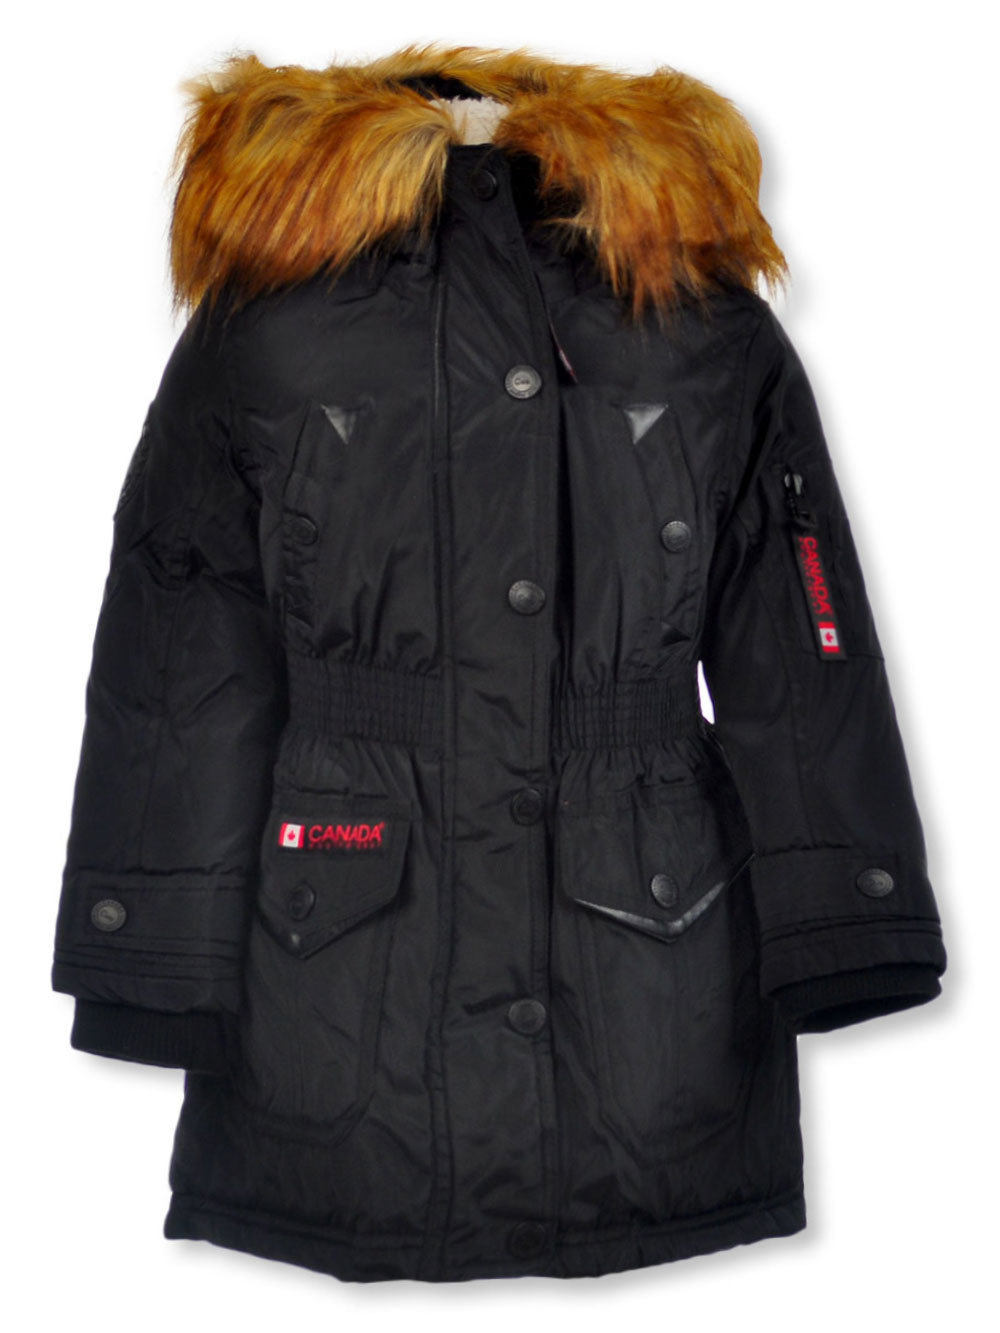 Canada Weather Gear Jackets and Coats